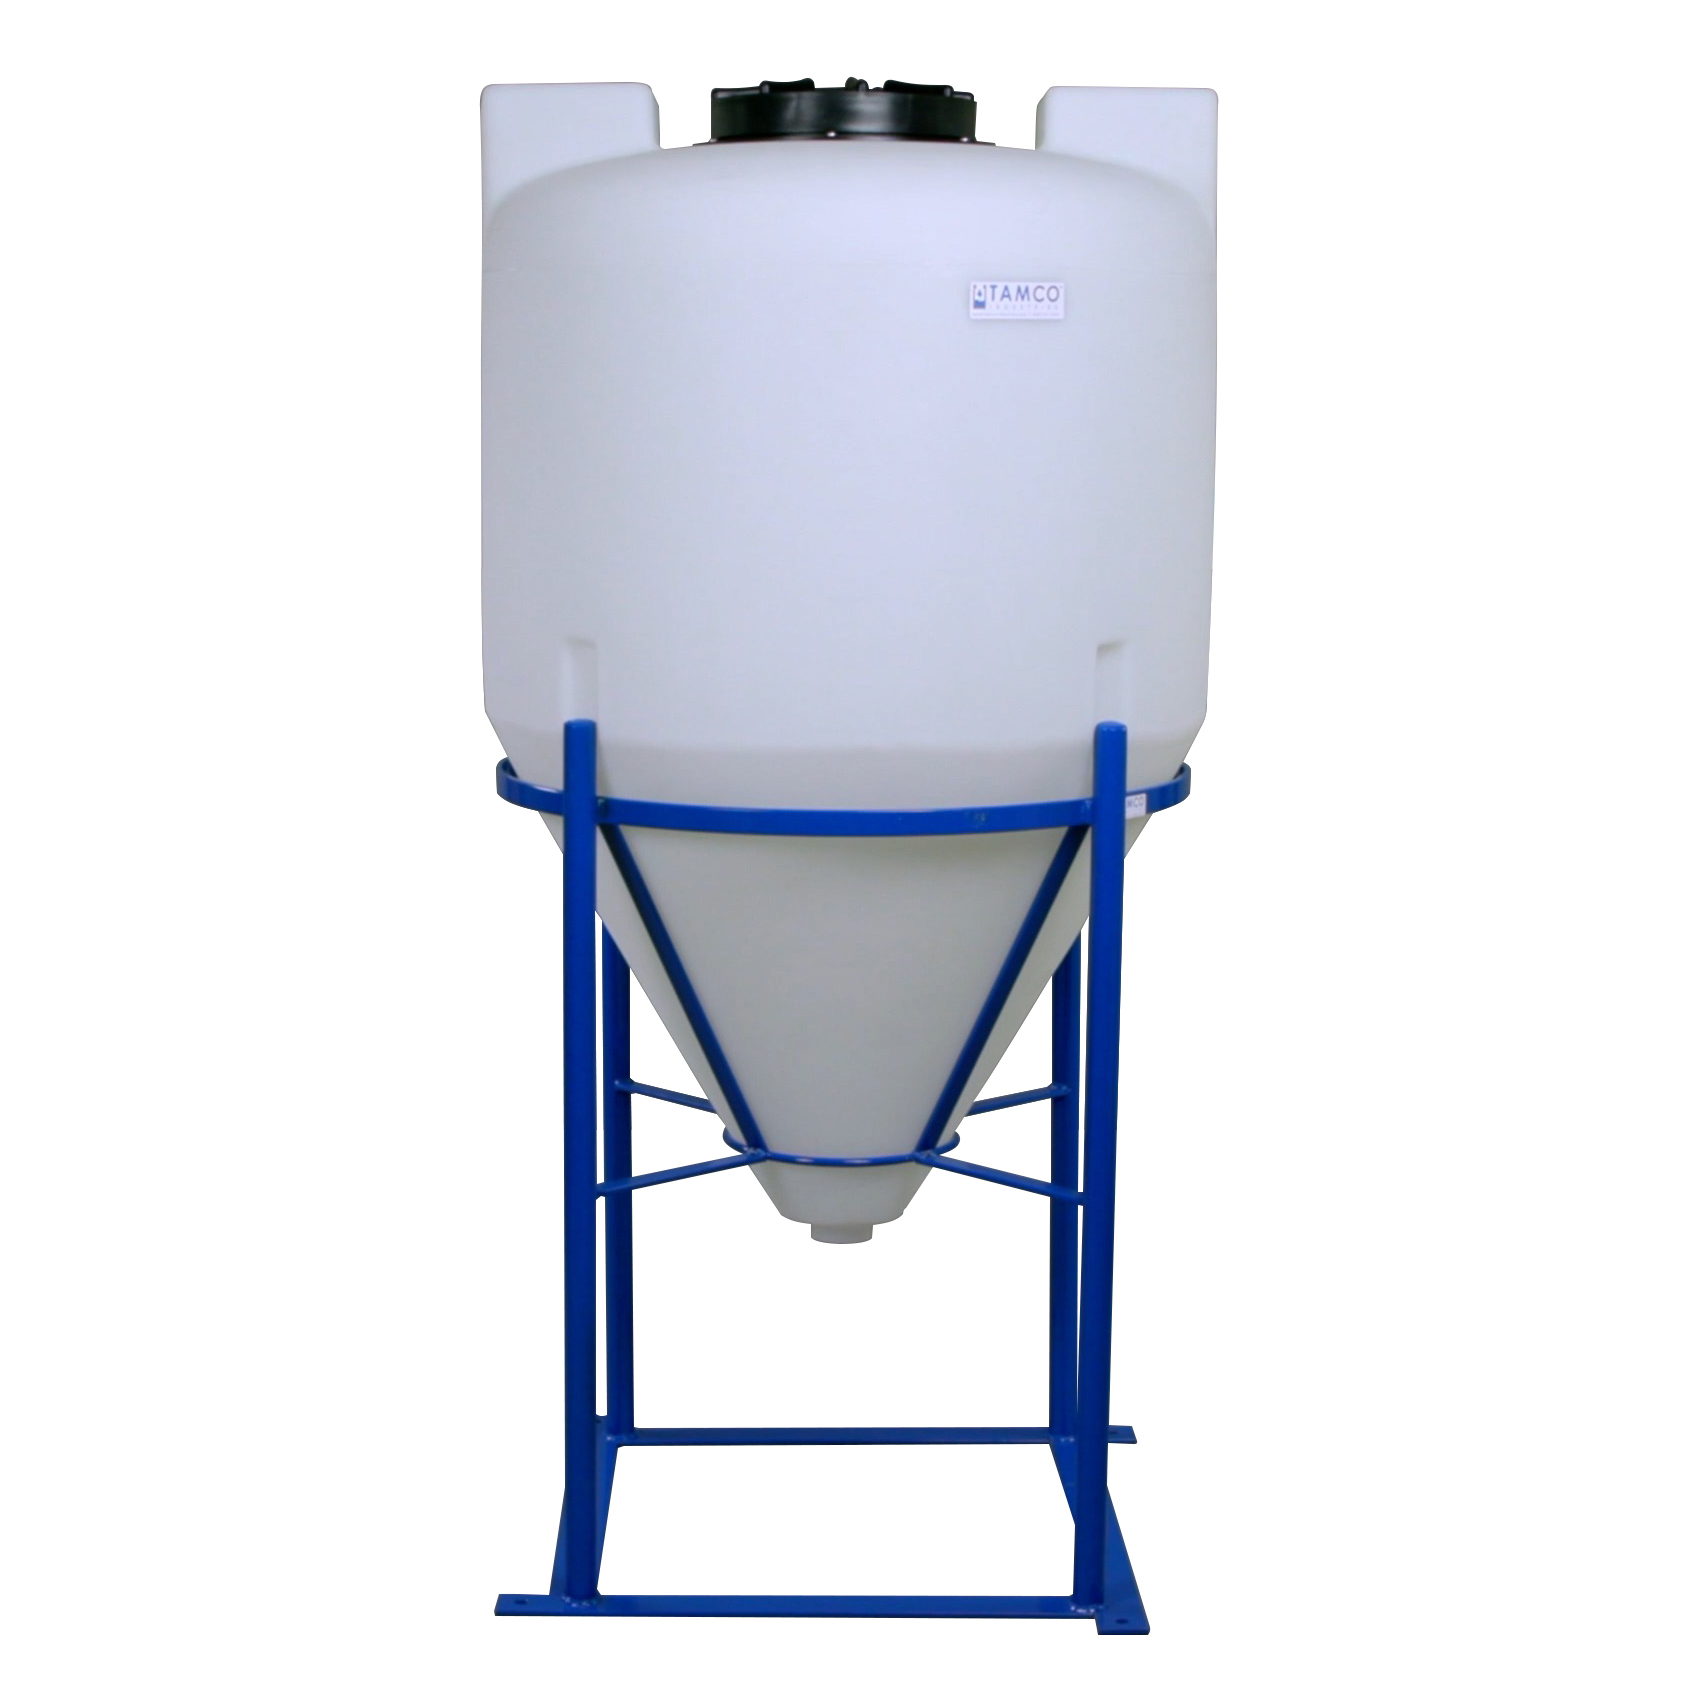 """75 Gallon Tamco® Cone Bottom Tank with Mixer Mounts & 2"""" FPT Boss Fitting (Full Drain) - 30"""" Dia. x 48"""" Hgt."""